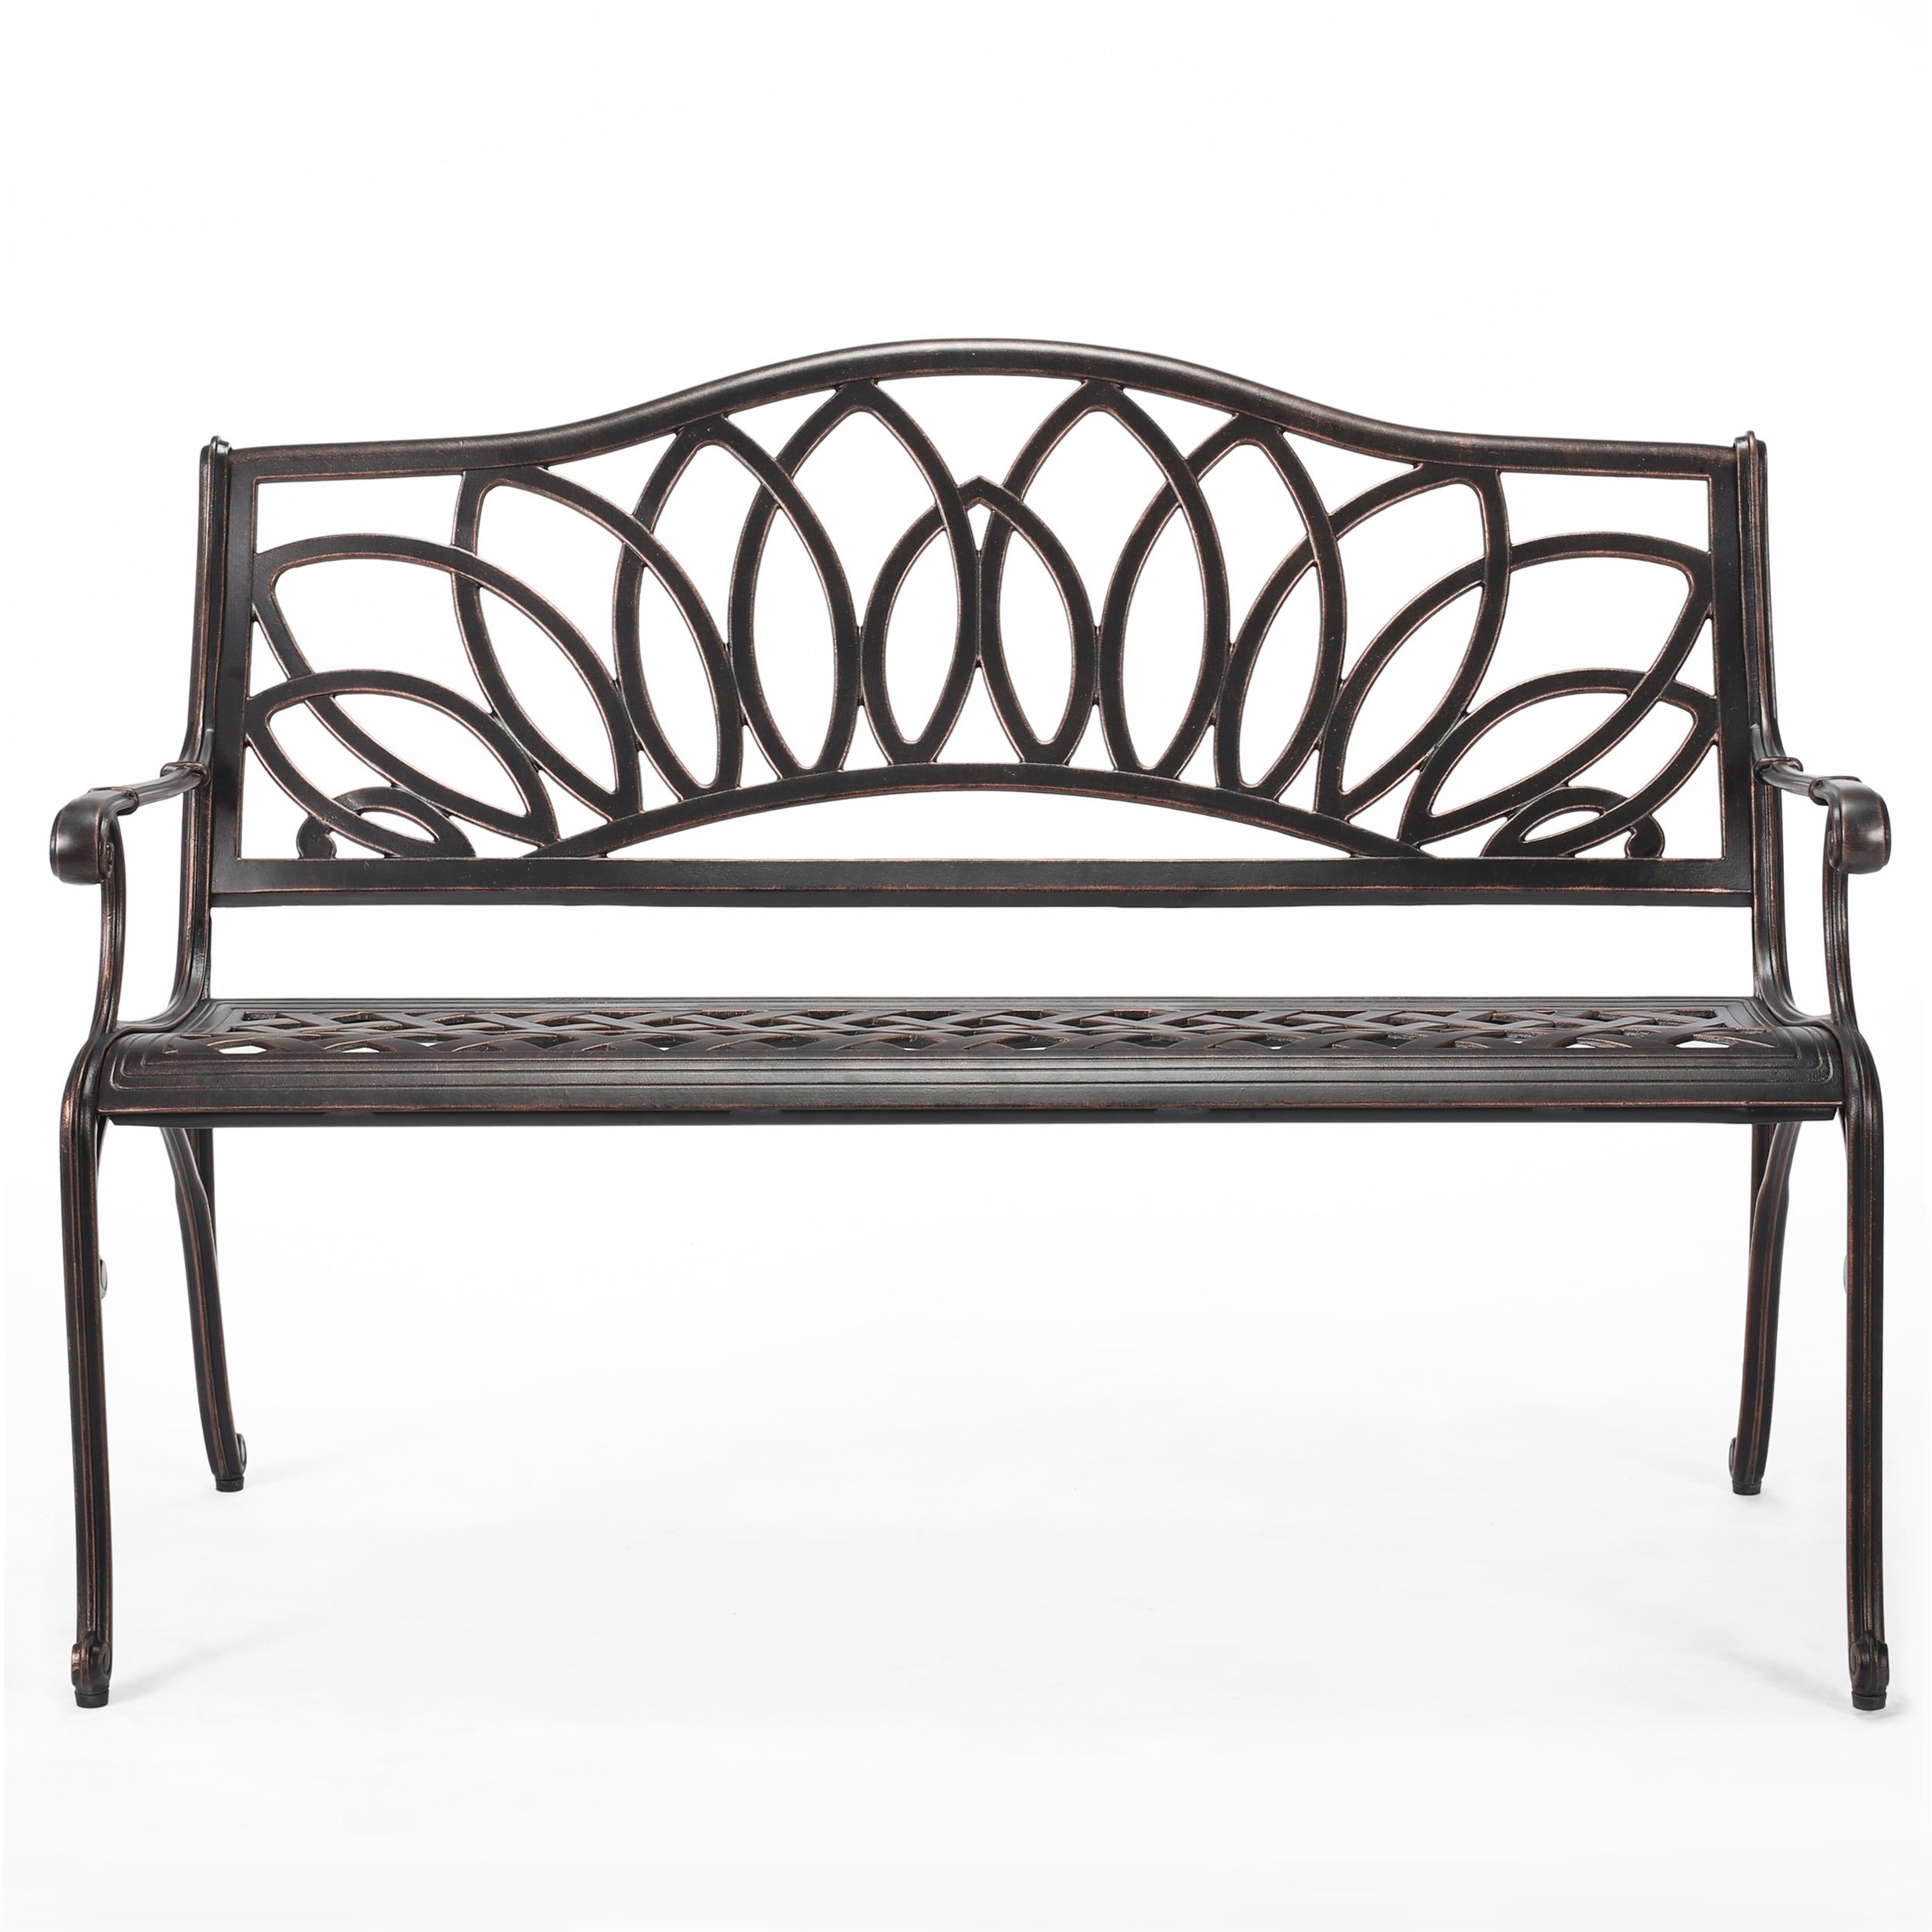 for furniture metal garden at building benches org sale and cast img outdoor chairs scallop f iron seahorse shell design id bench